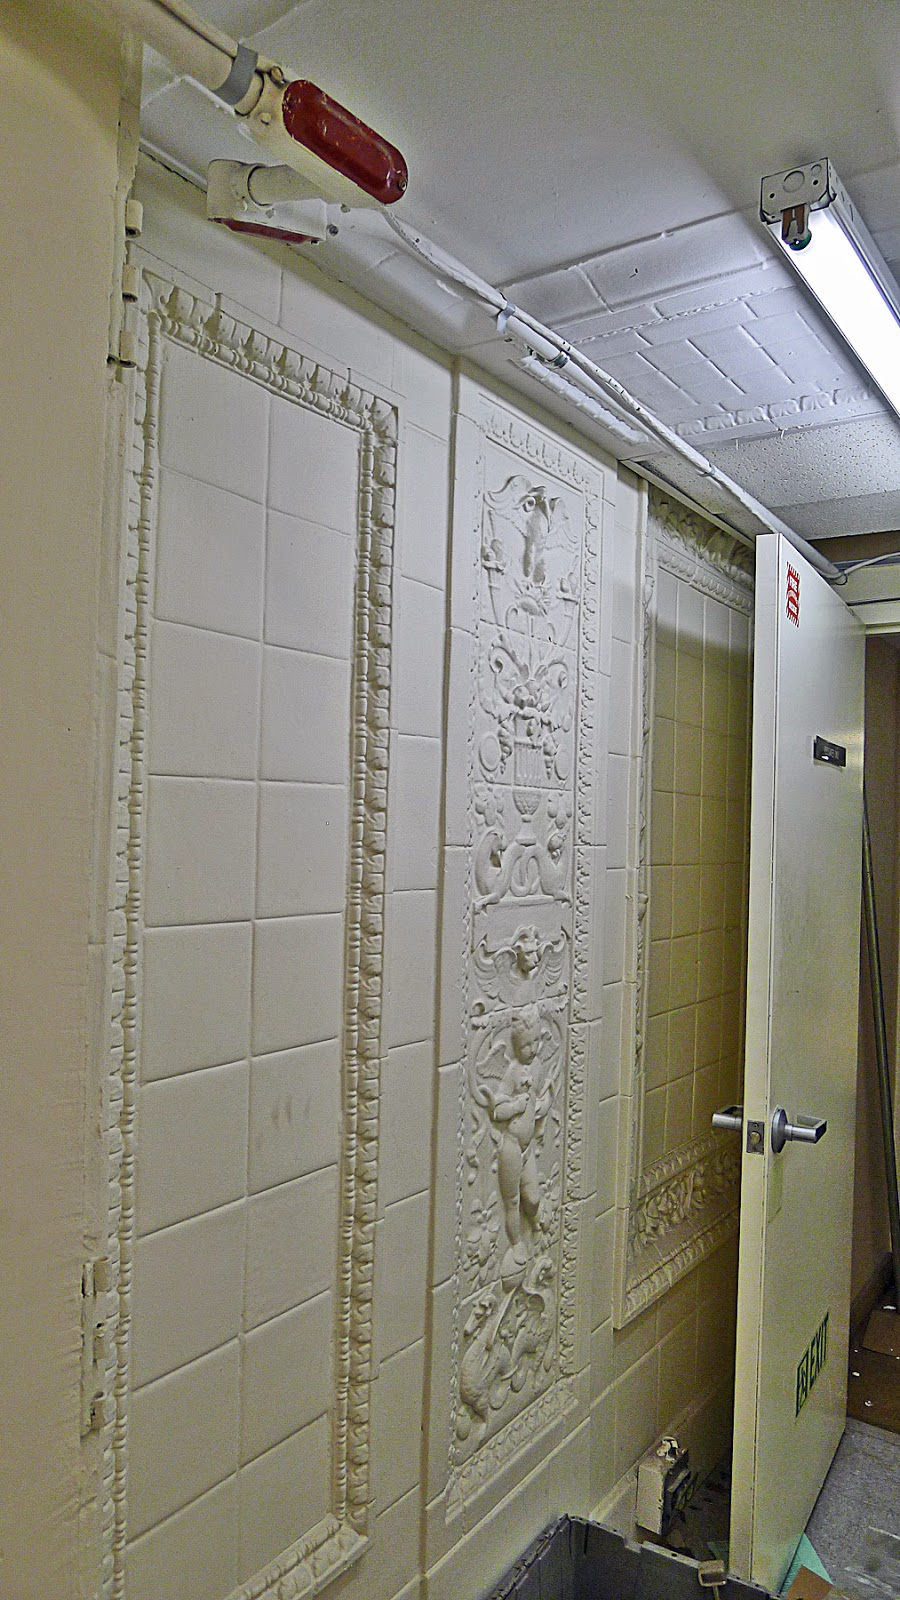 Installed bronze like tile on the weeping wall it looks old school - A 7 6 High Rookwood Faience Pilaster Wall And Ceiling Tiles And Faience Border Decoration